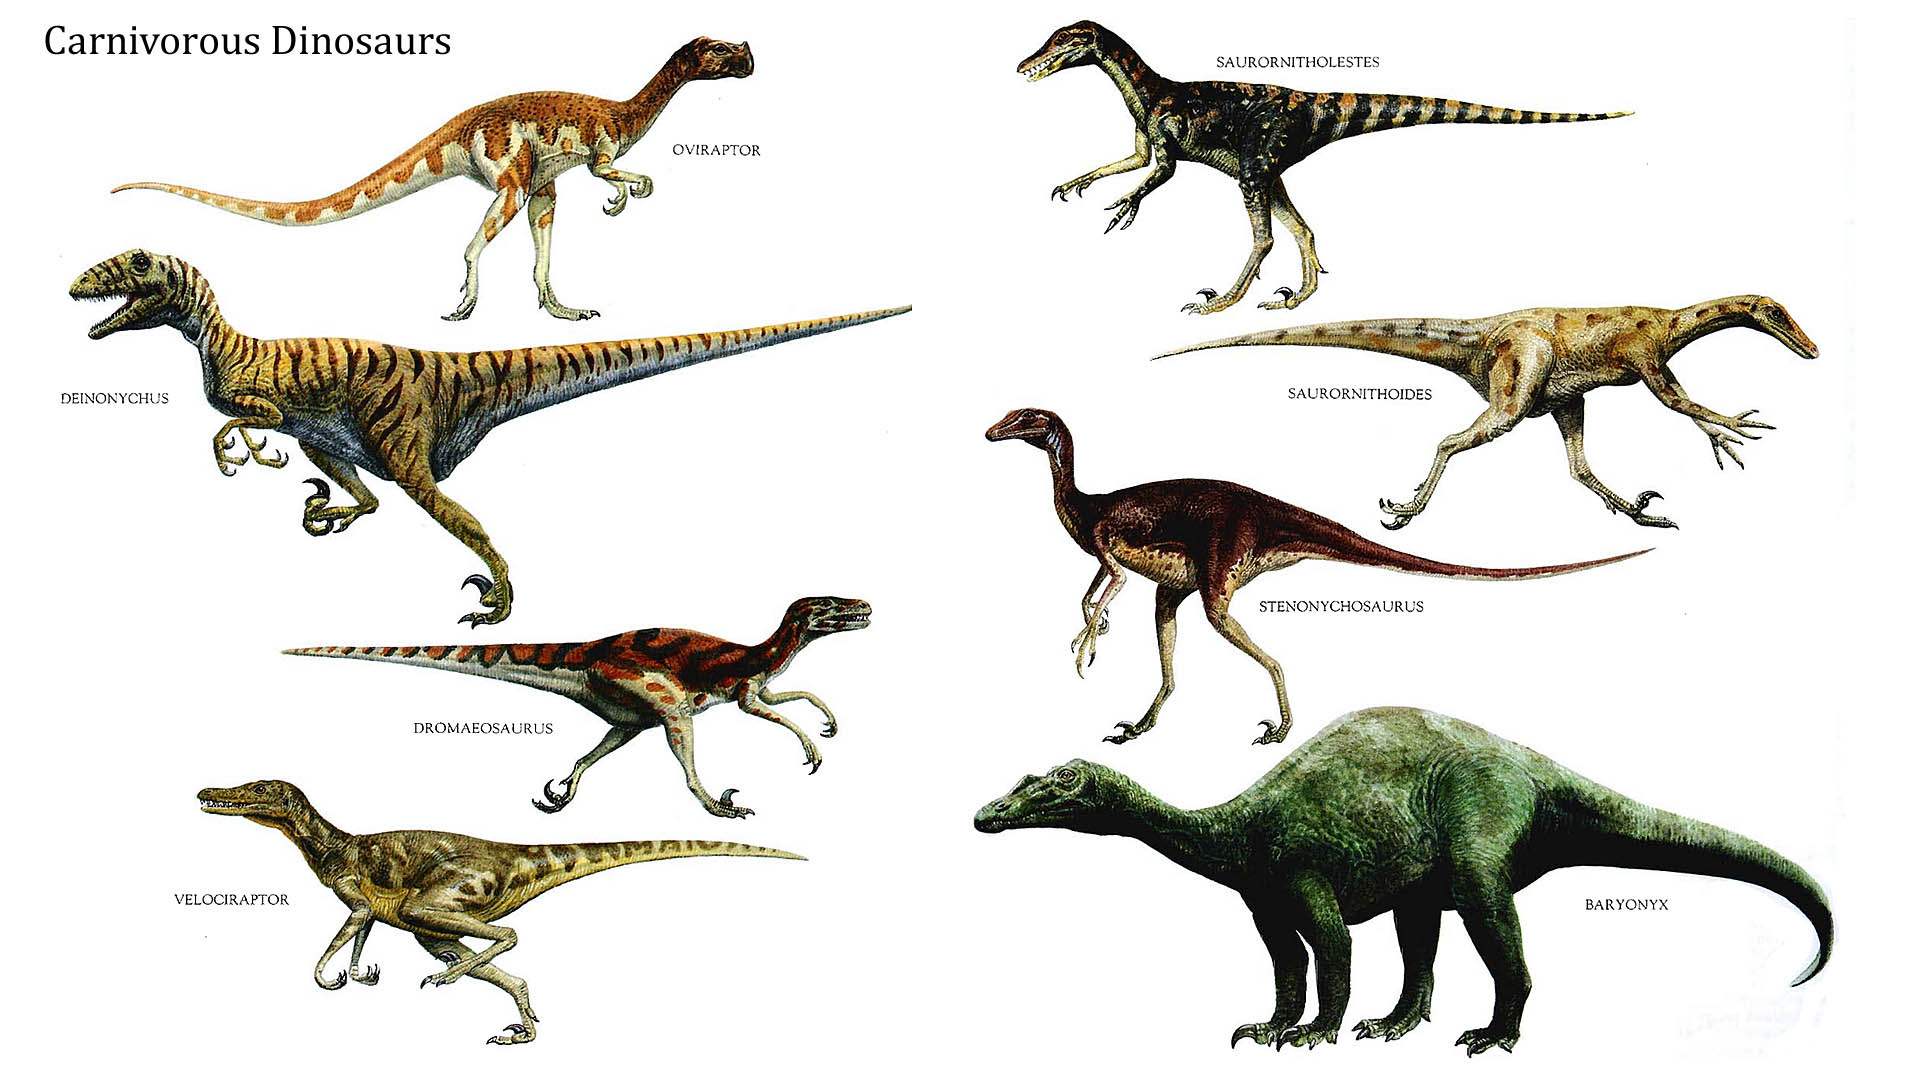 http//ayay.co.uk/background/dinosaurs/carnivore/large